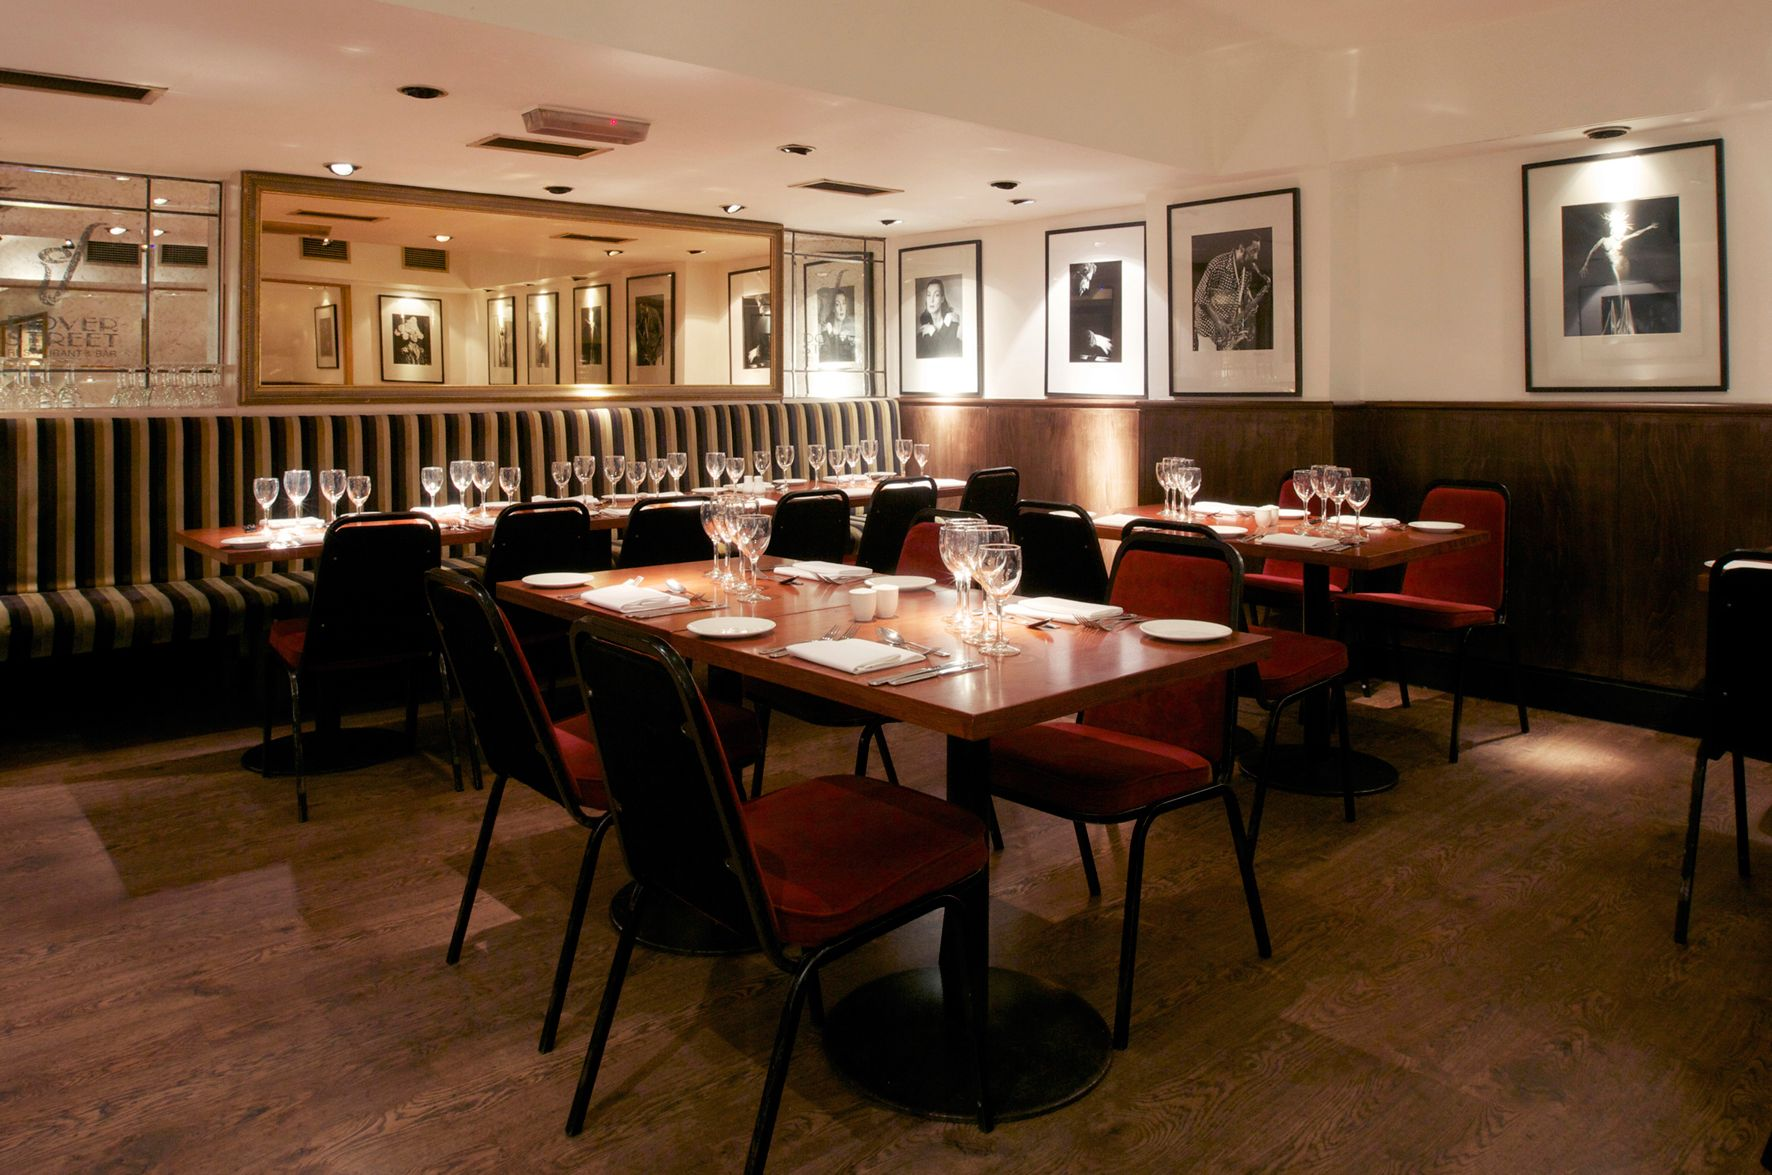 2 for 1 five course meal and cocktail at dover st